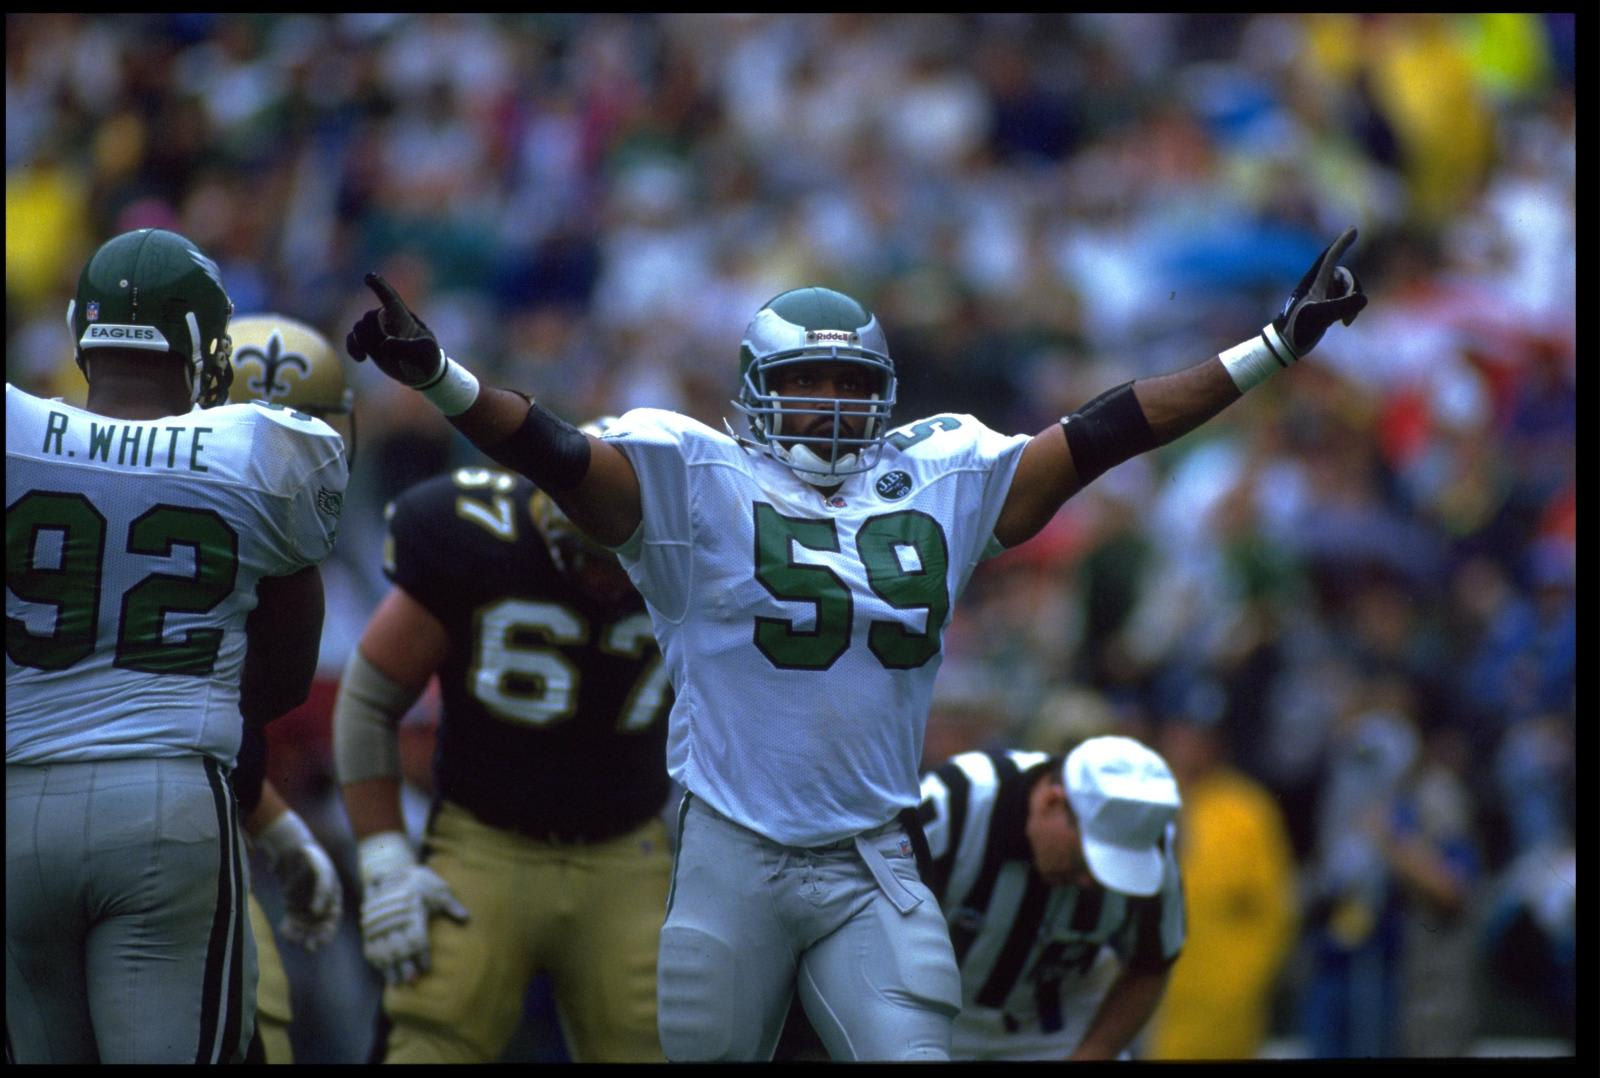 Seth Joyner, Philadelphia Eagles